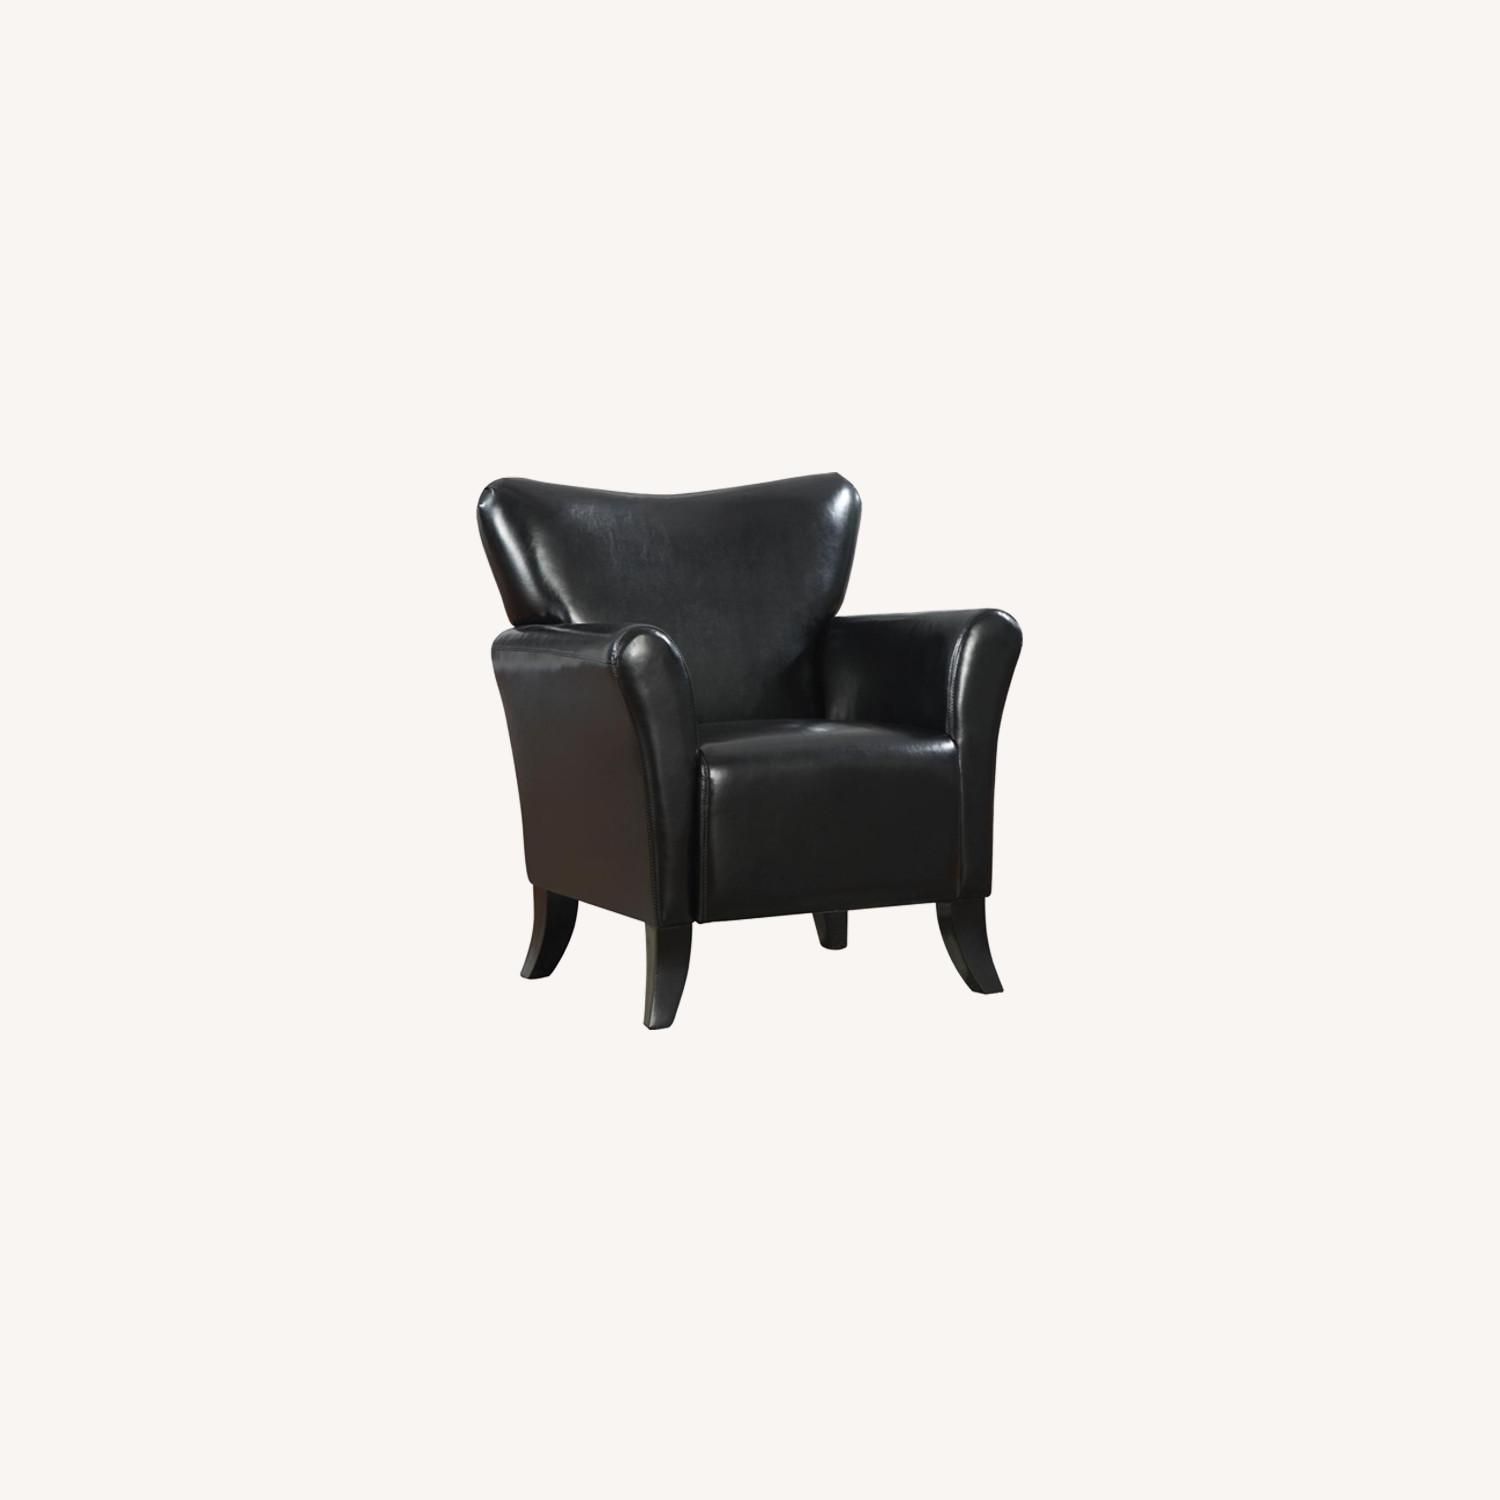 Styling Accent Chair In Black Leatherette - image-3